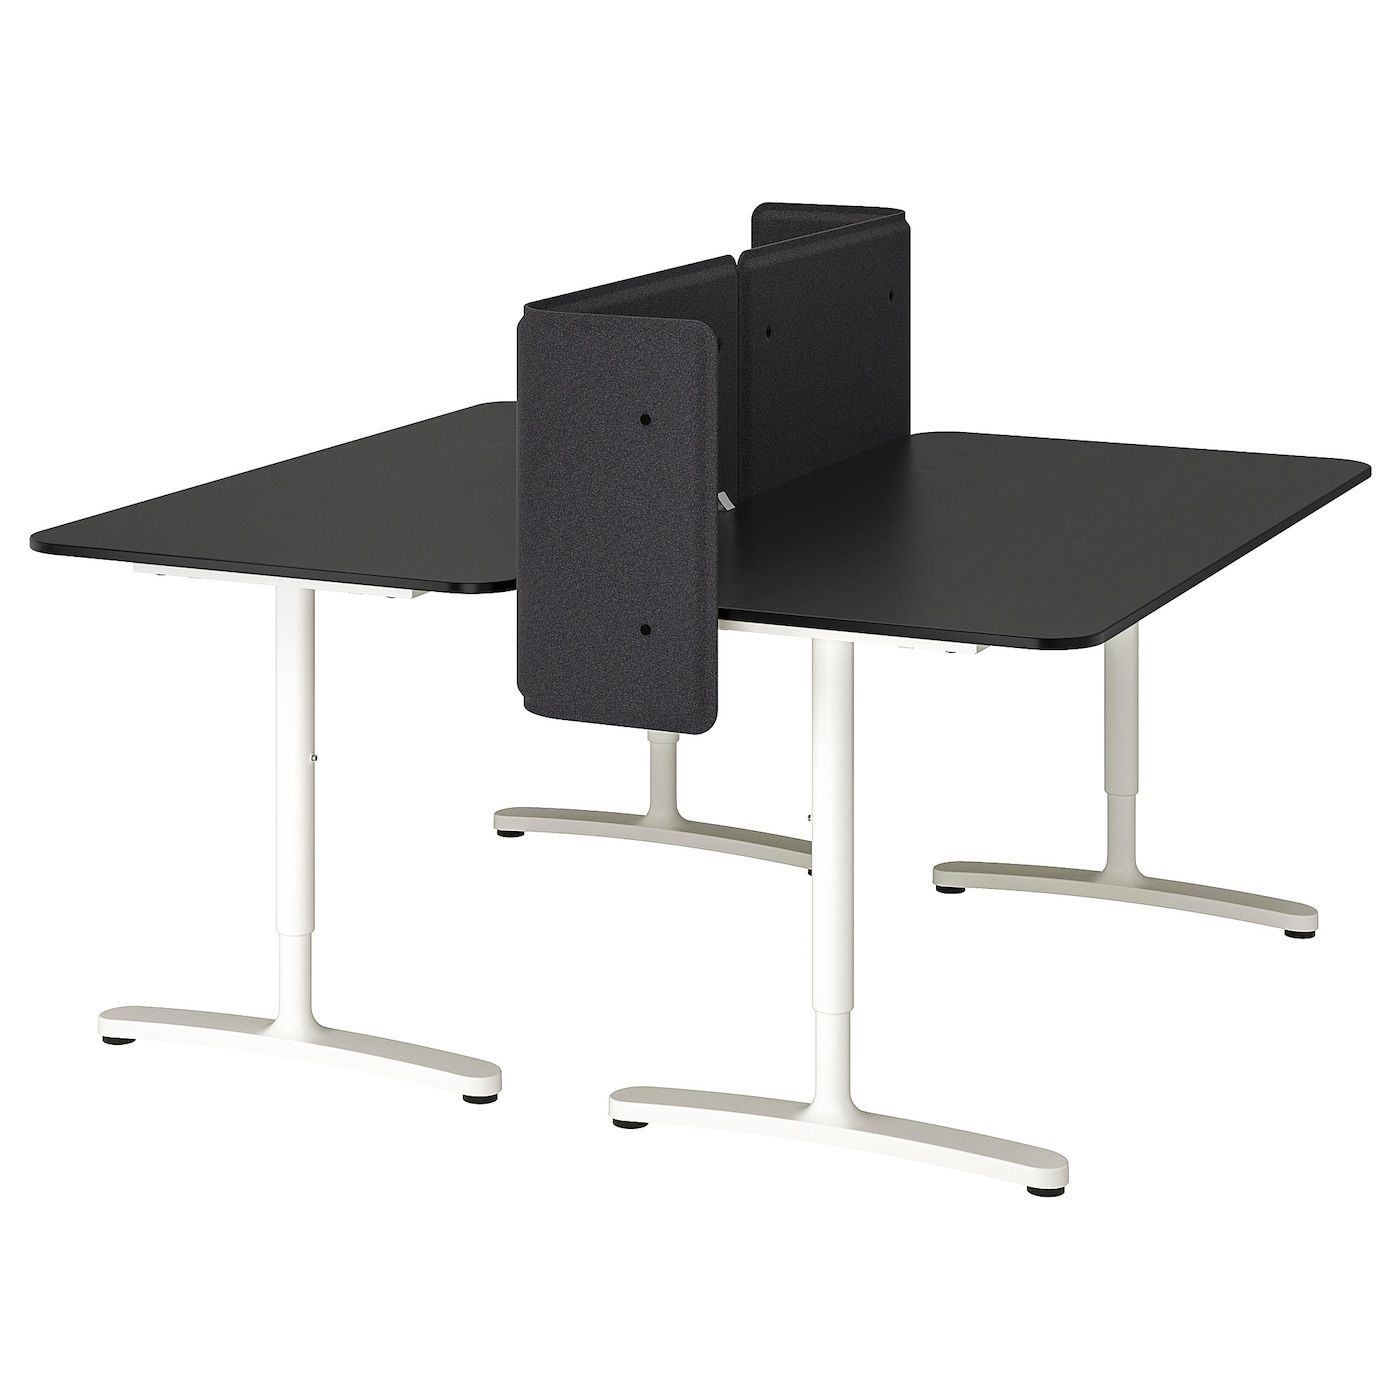 Bekant Desk With Screen Black Stained Ash Veneer White 63x63 21 5 8 160x160 55 Cm Ikea Bekant Ikea Ikea Bekant Desk